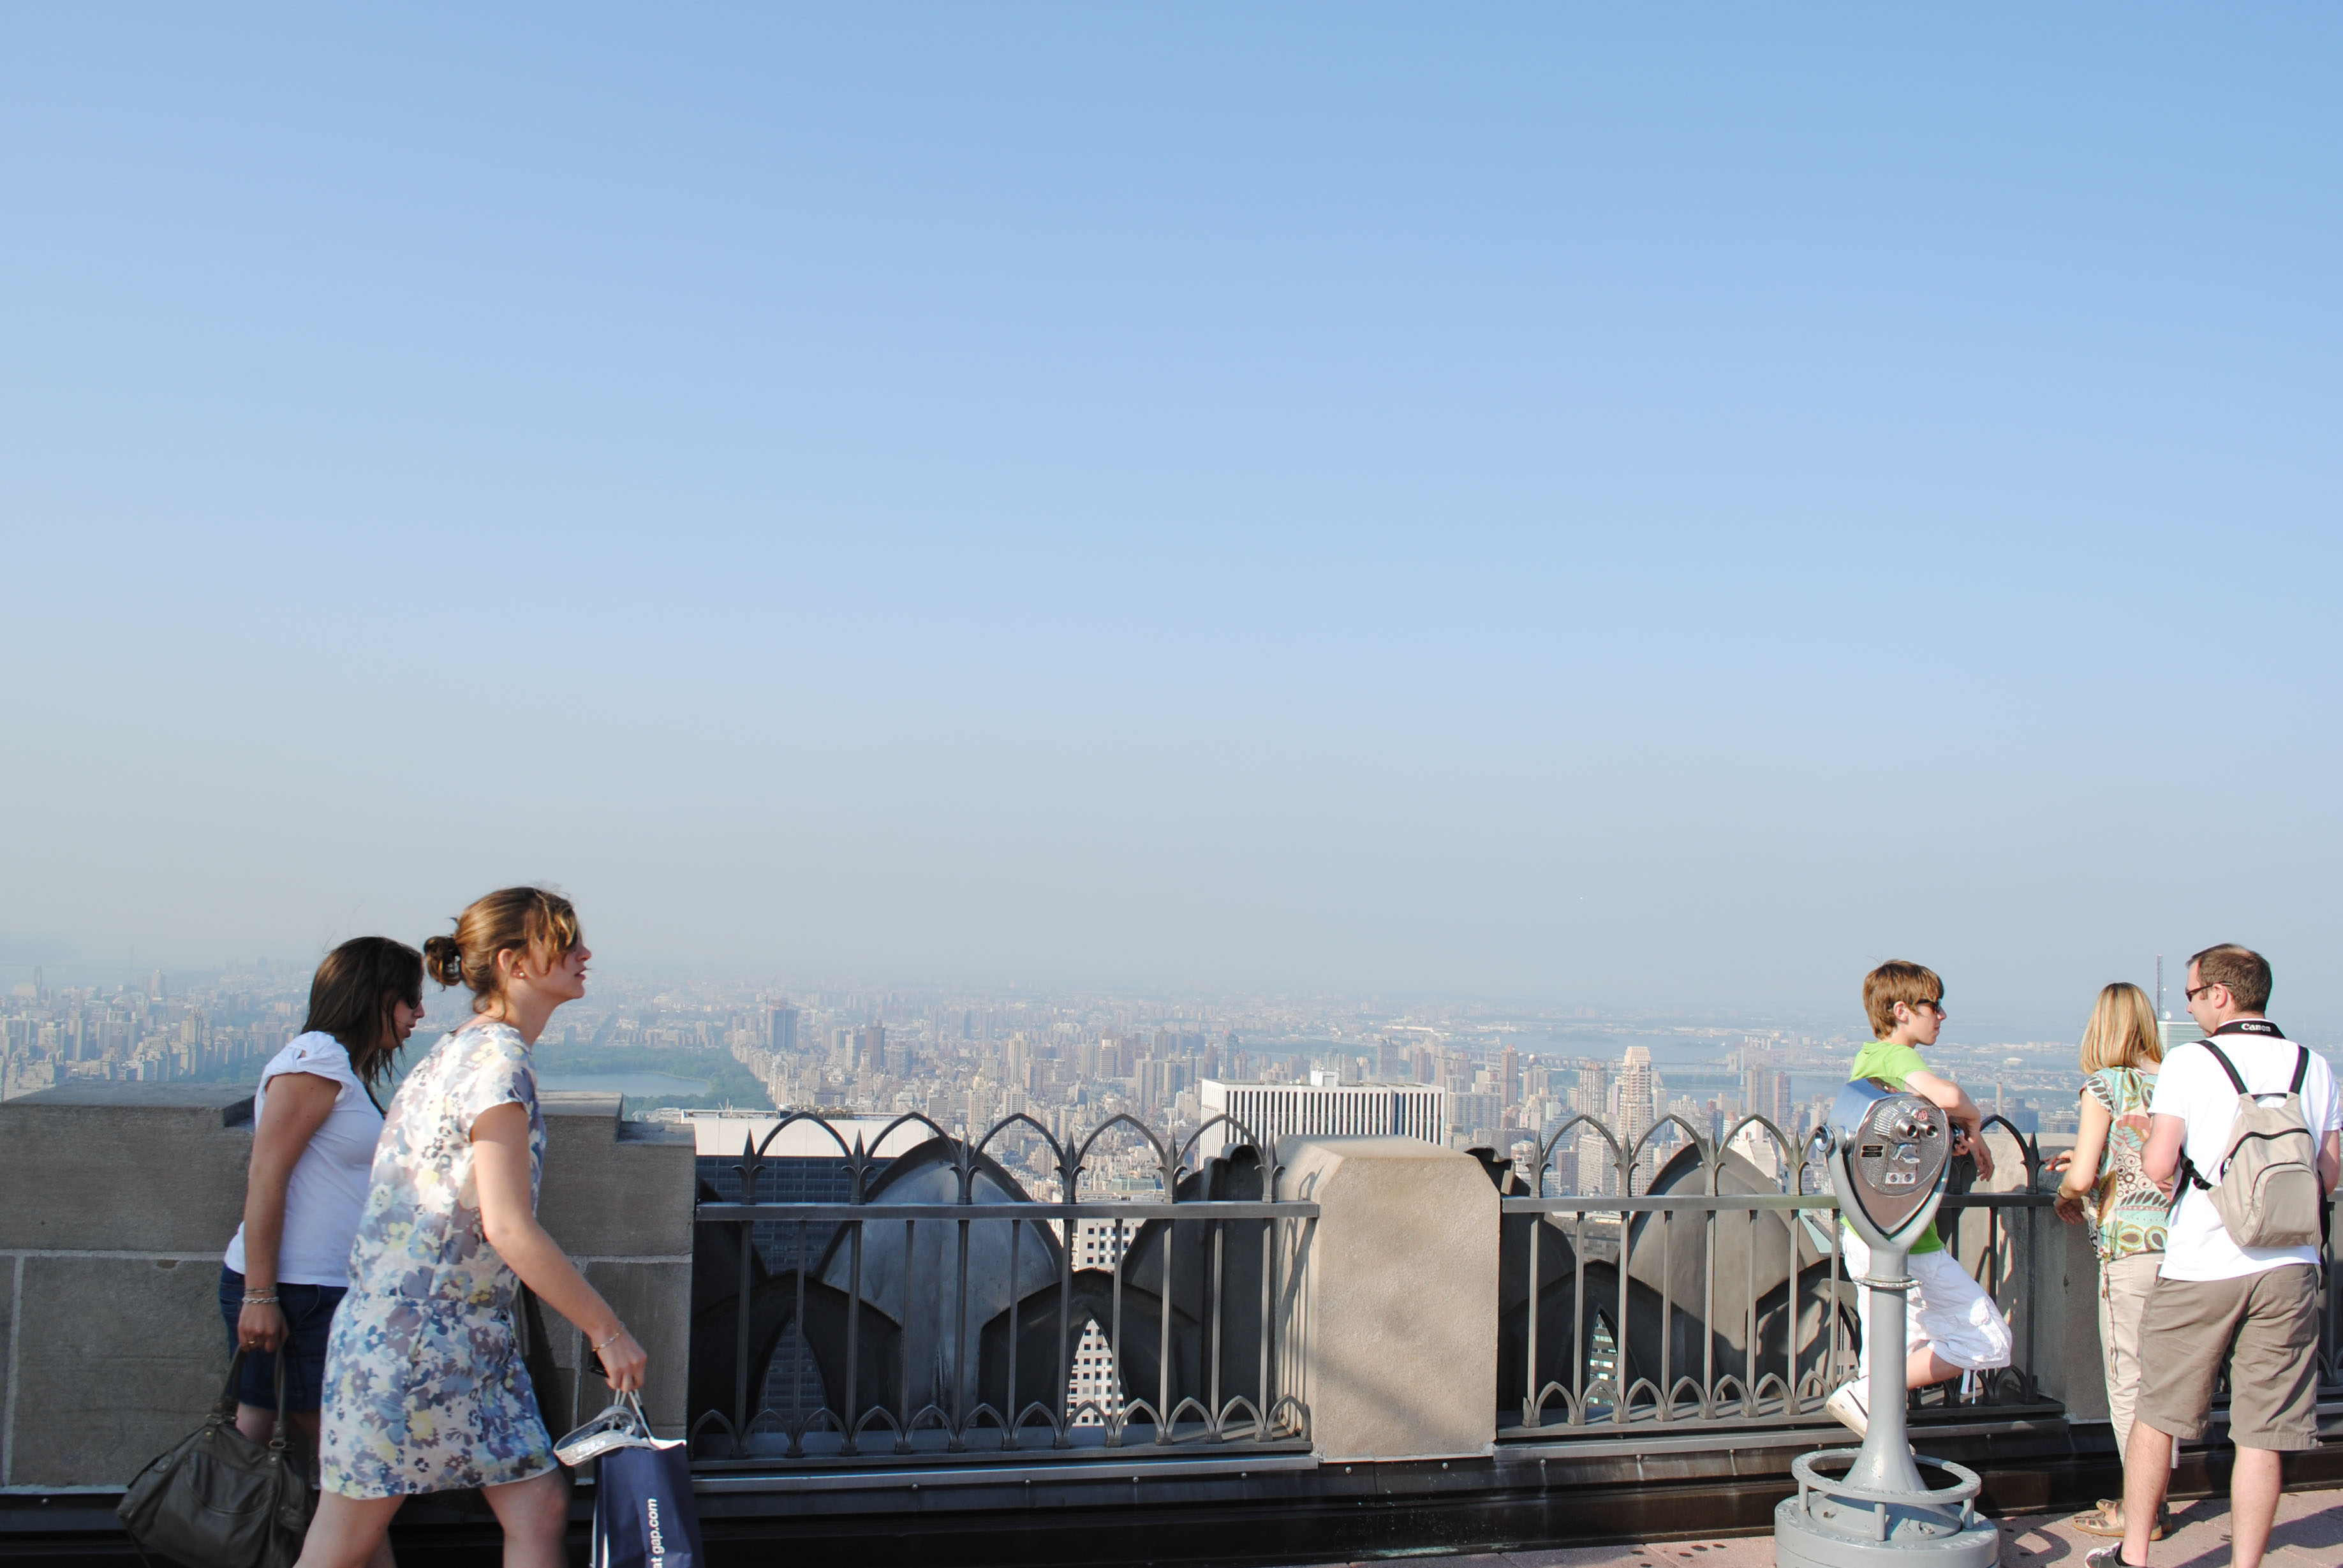 Enjoying the 360 degree views at the Top of The Rock